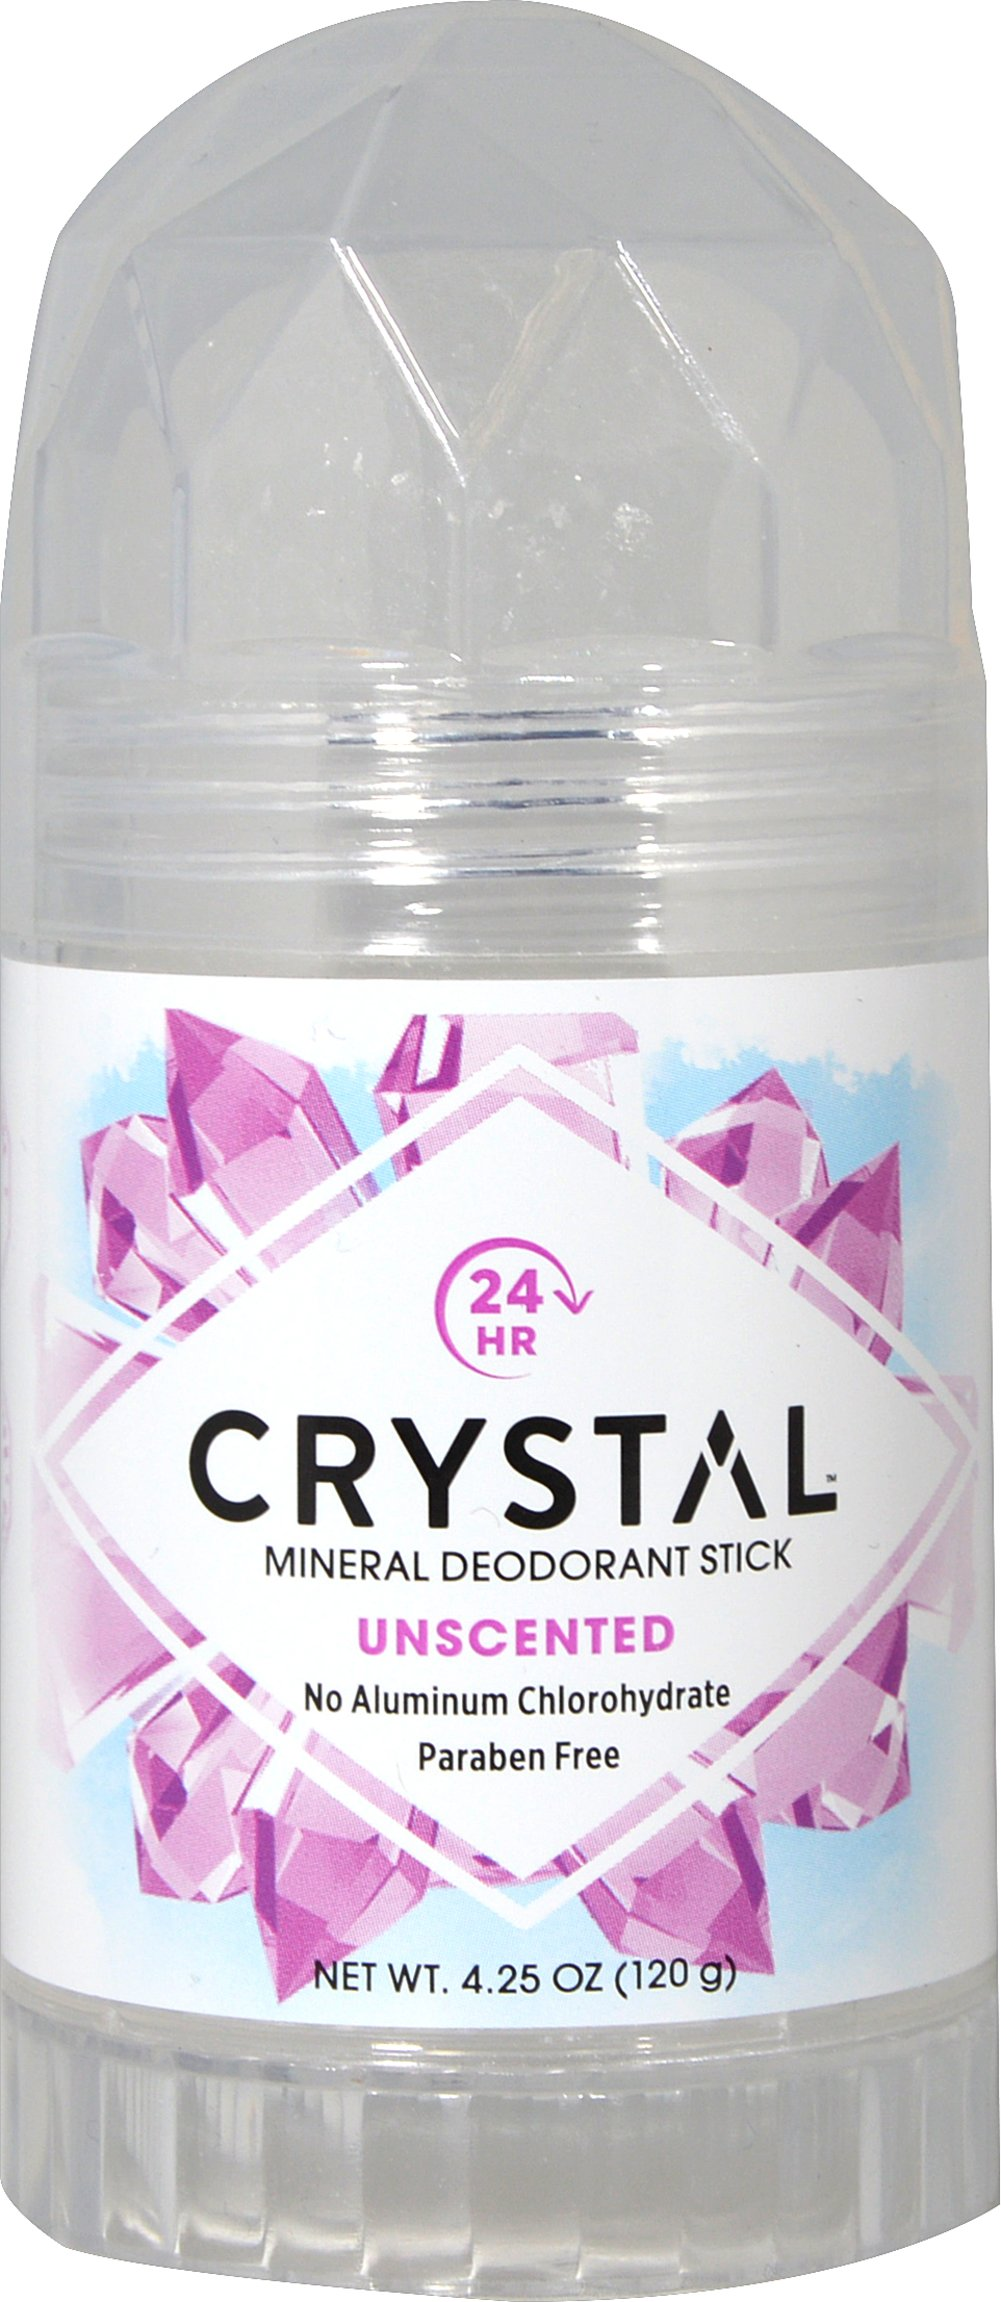 Crystal® Body Deodorant Stick  4.25 oz Stick  $4.99